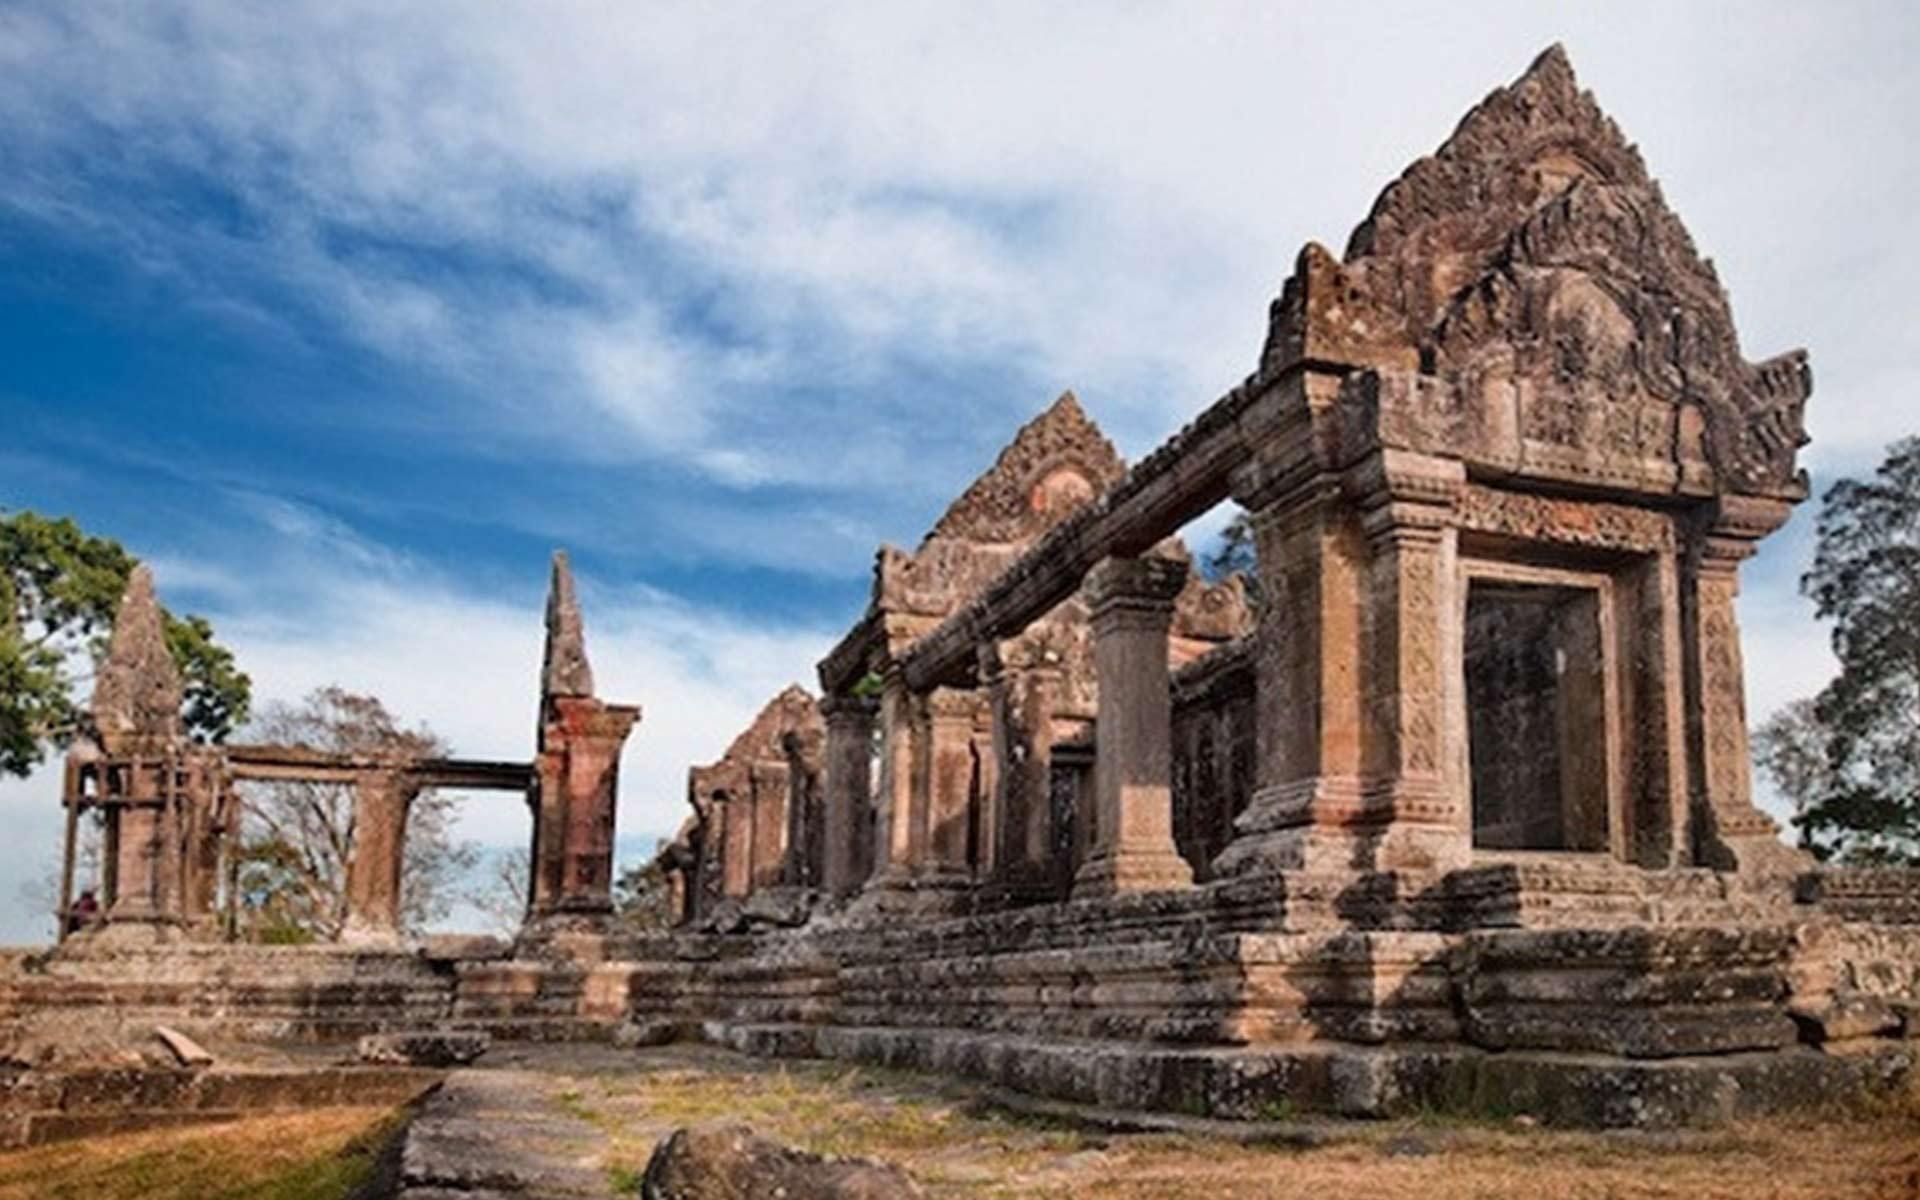 Explore Preah Vihear Temple 2 days